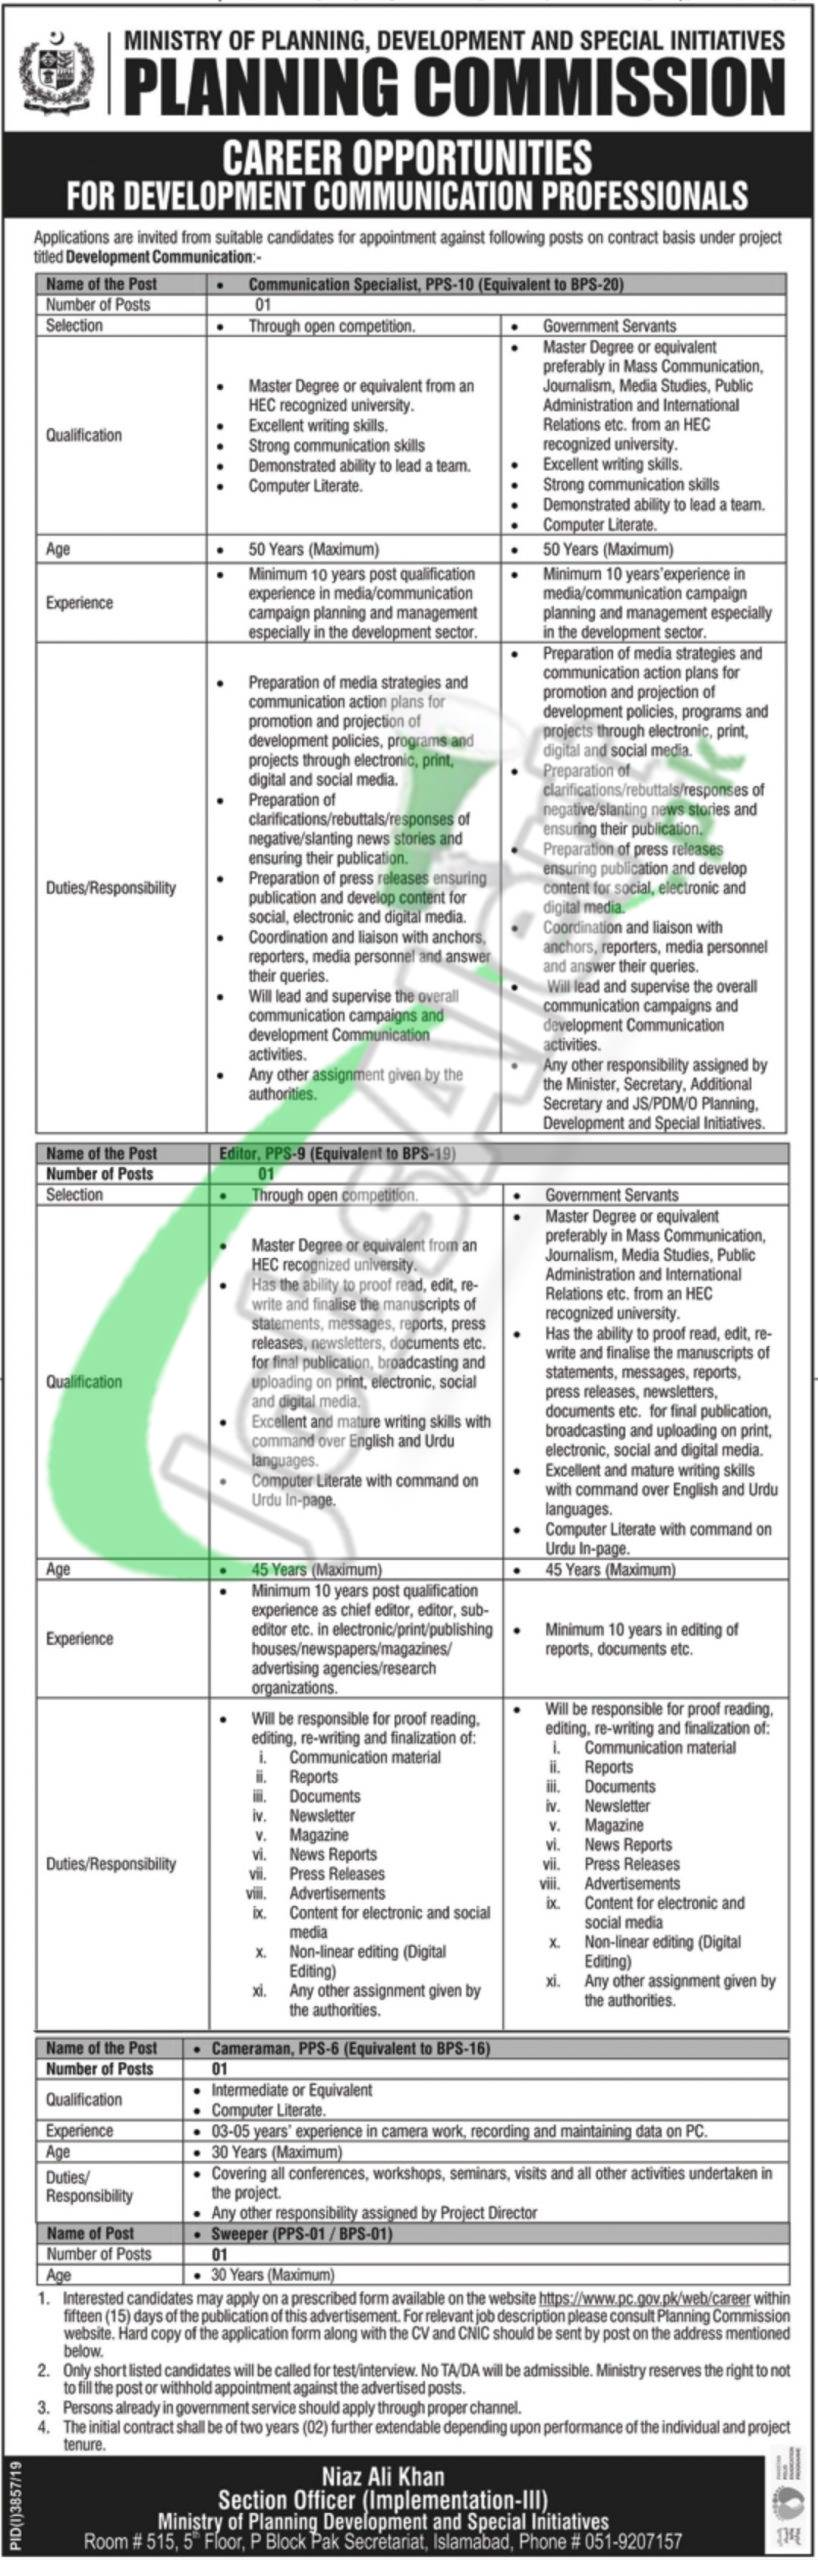 Career Opportunities for Development Communications Professionals